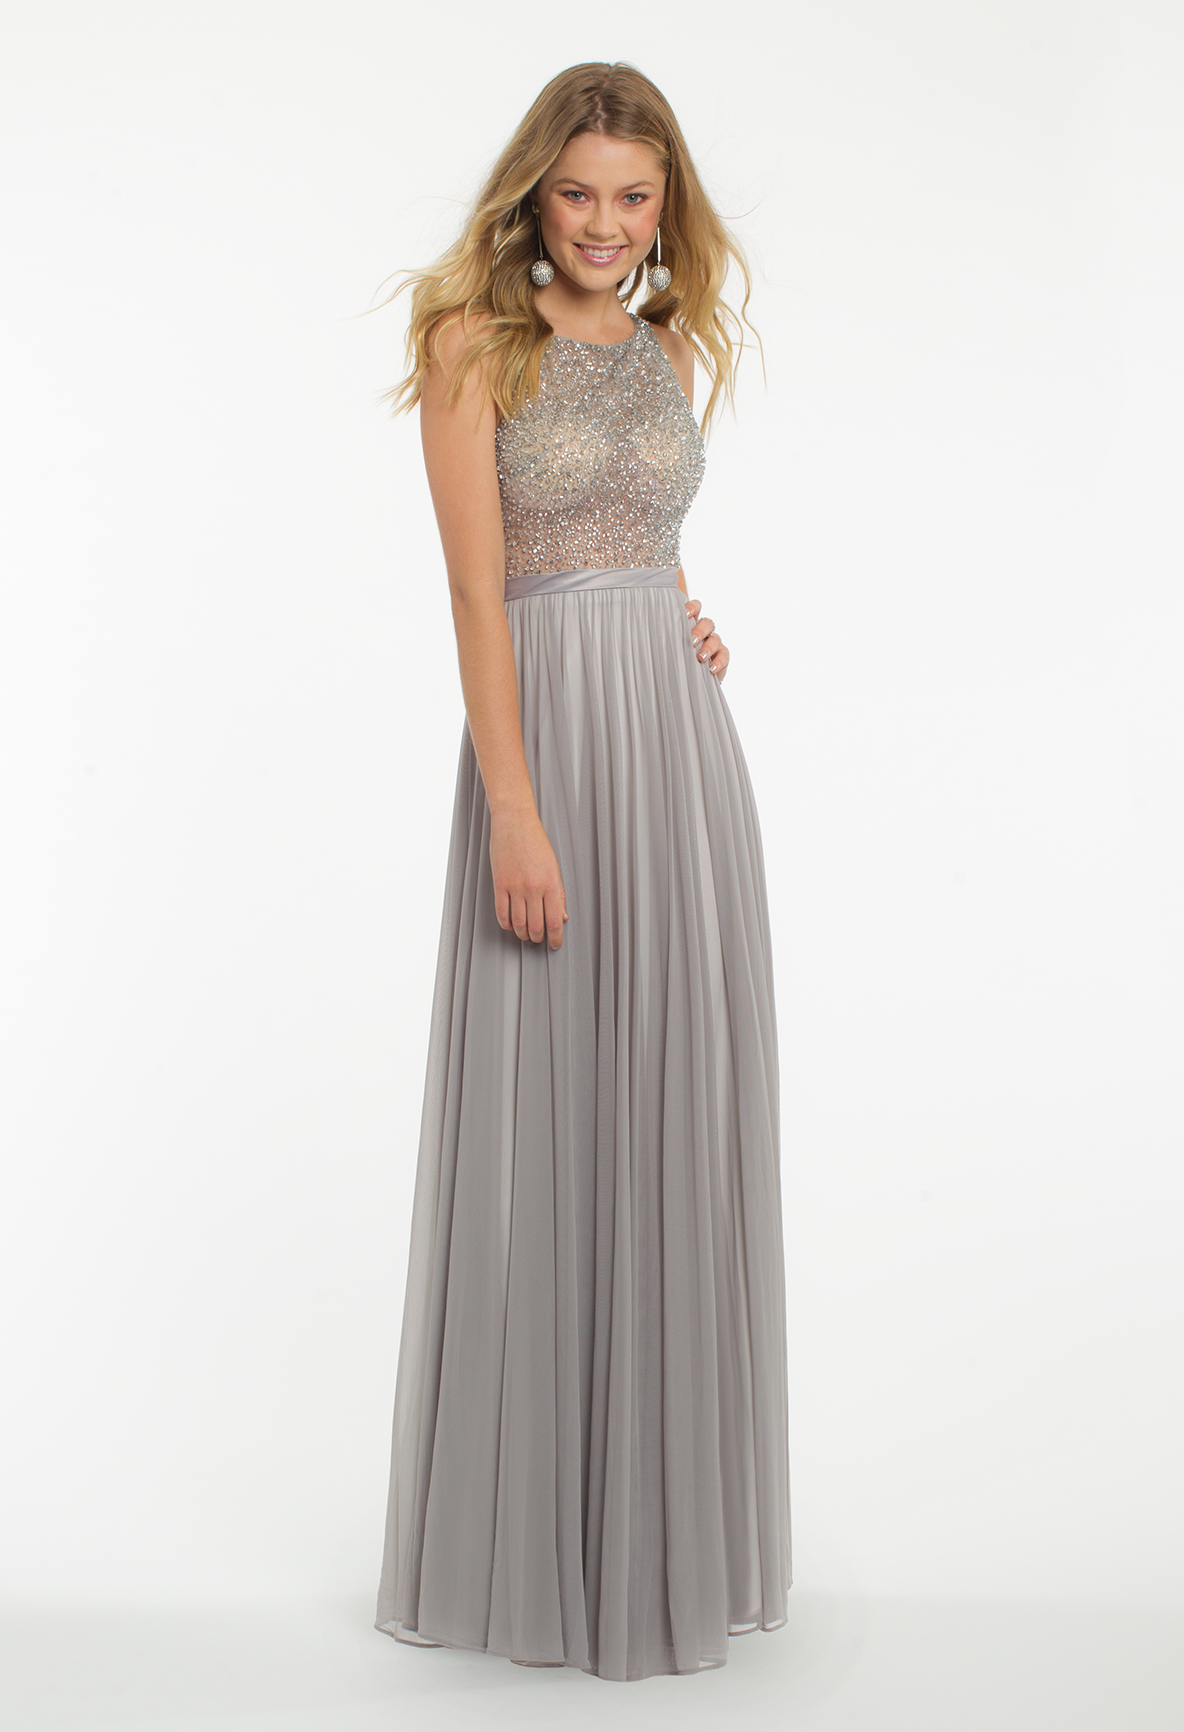 Dazzle on the dance floor in this beautiful prom dress the features